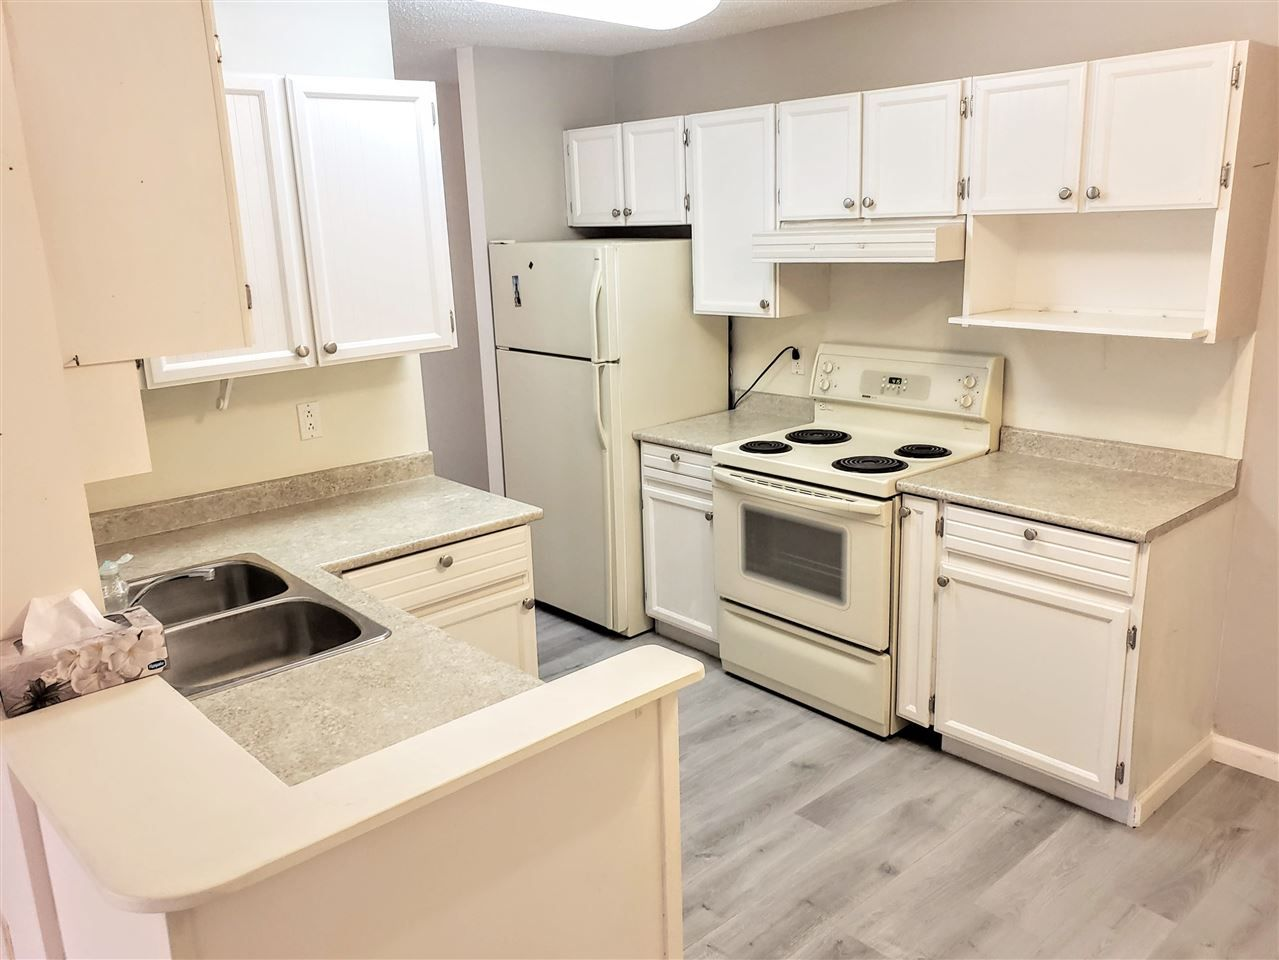 """Main Photo: 309 9175 MARY Street in Chilliwack: Chilliwack W Young-Well Condo for sale in """"Ridgewood Court"""" : MLS®# R2572013"""